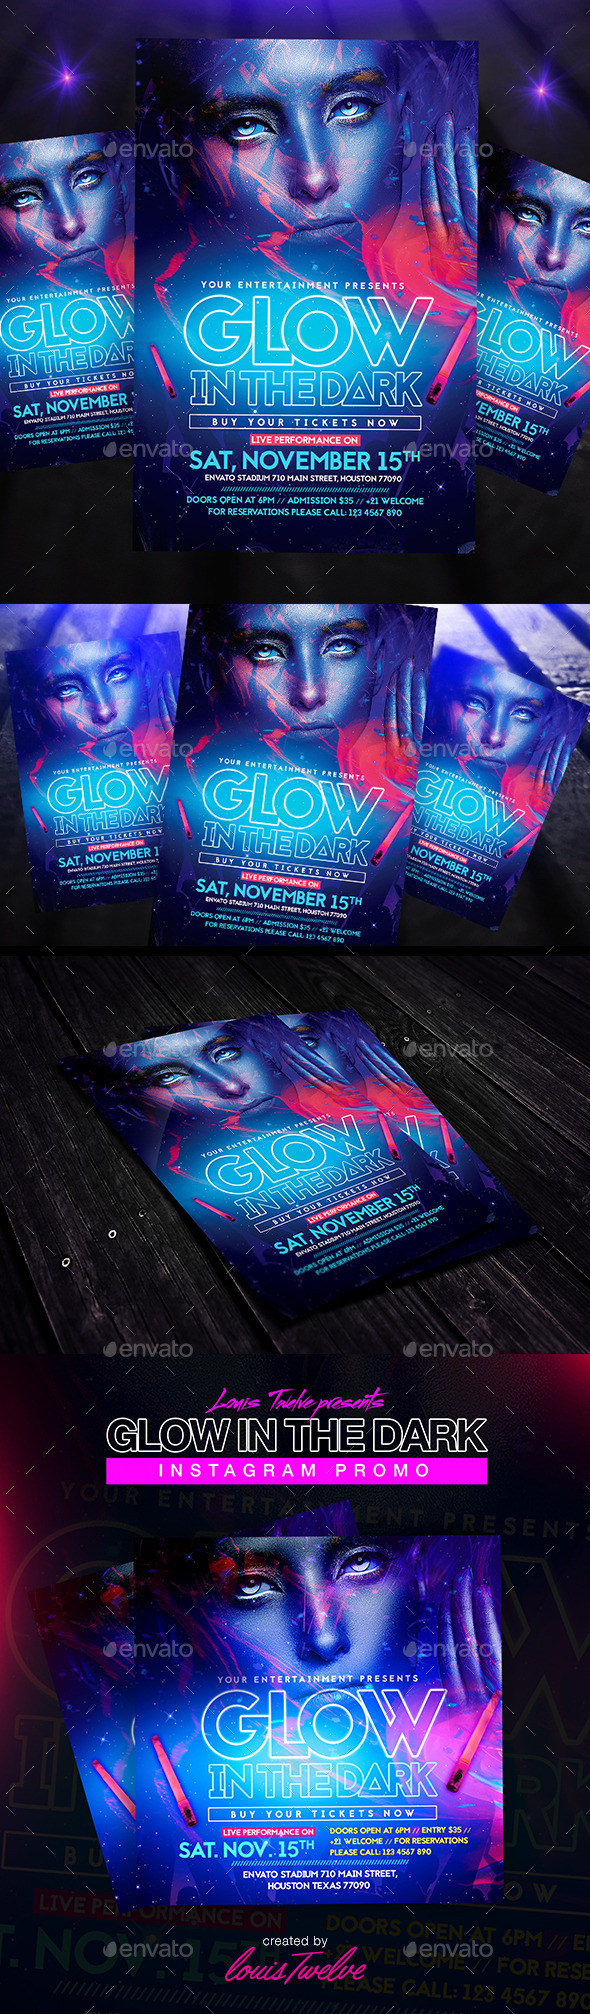 GraphicRiver Glow in the Dark Flyer & Instagram Promo 9136501